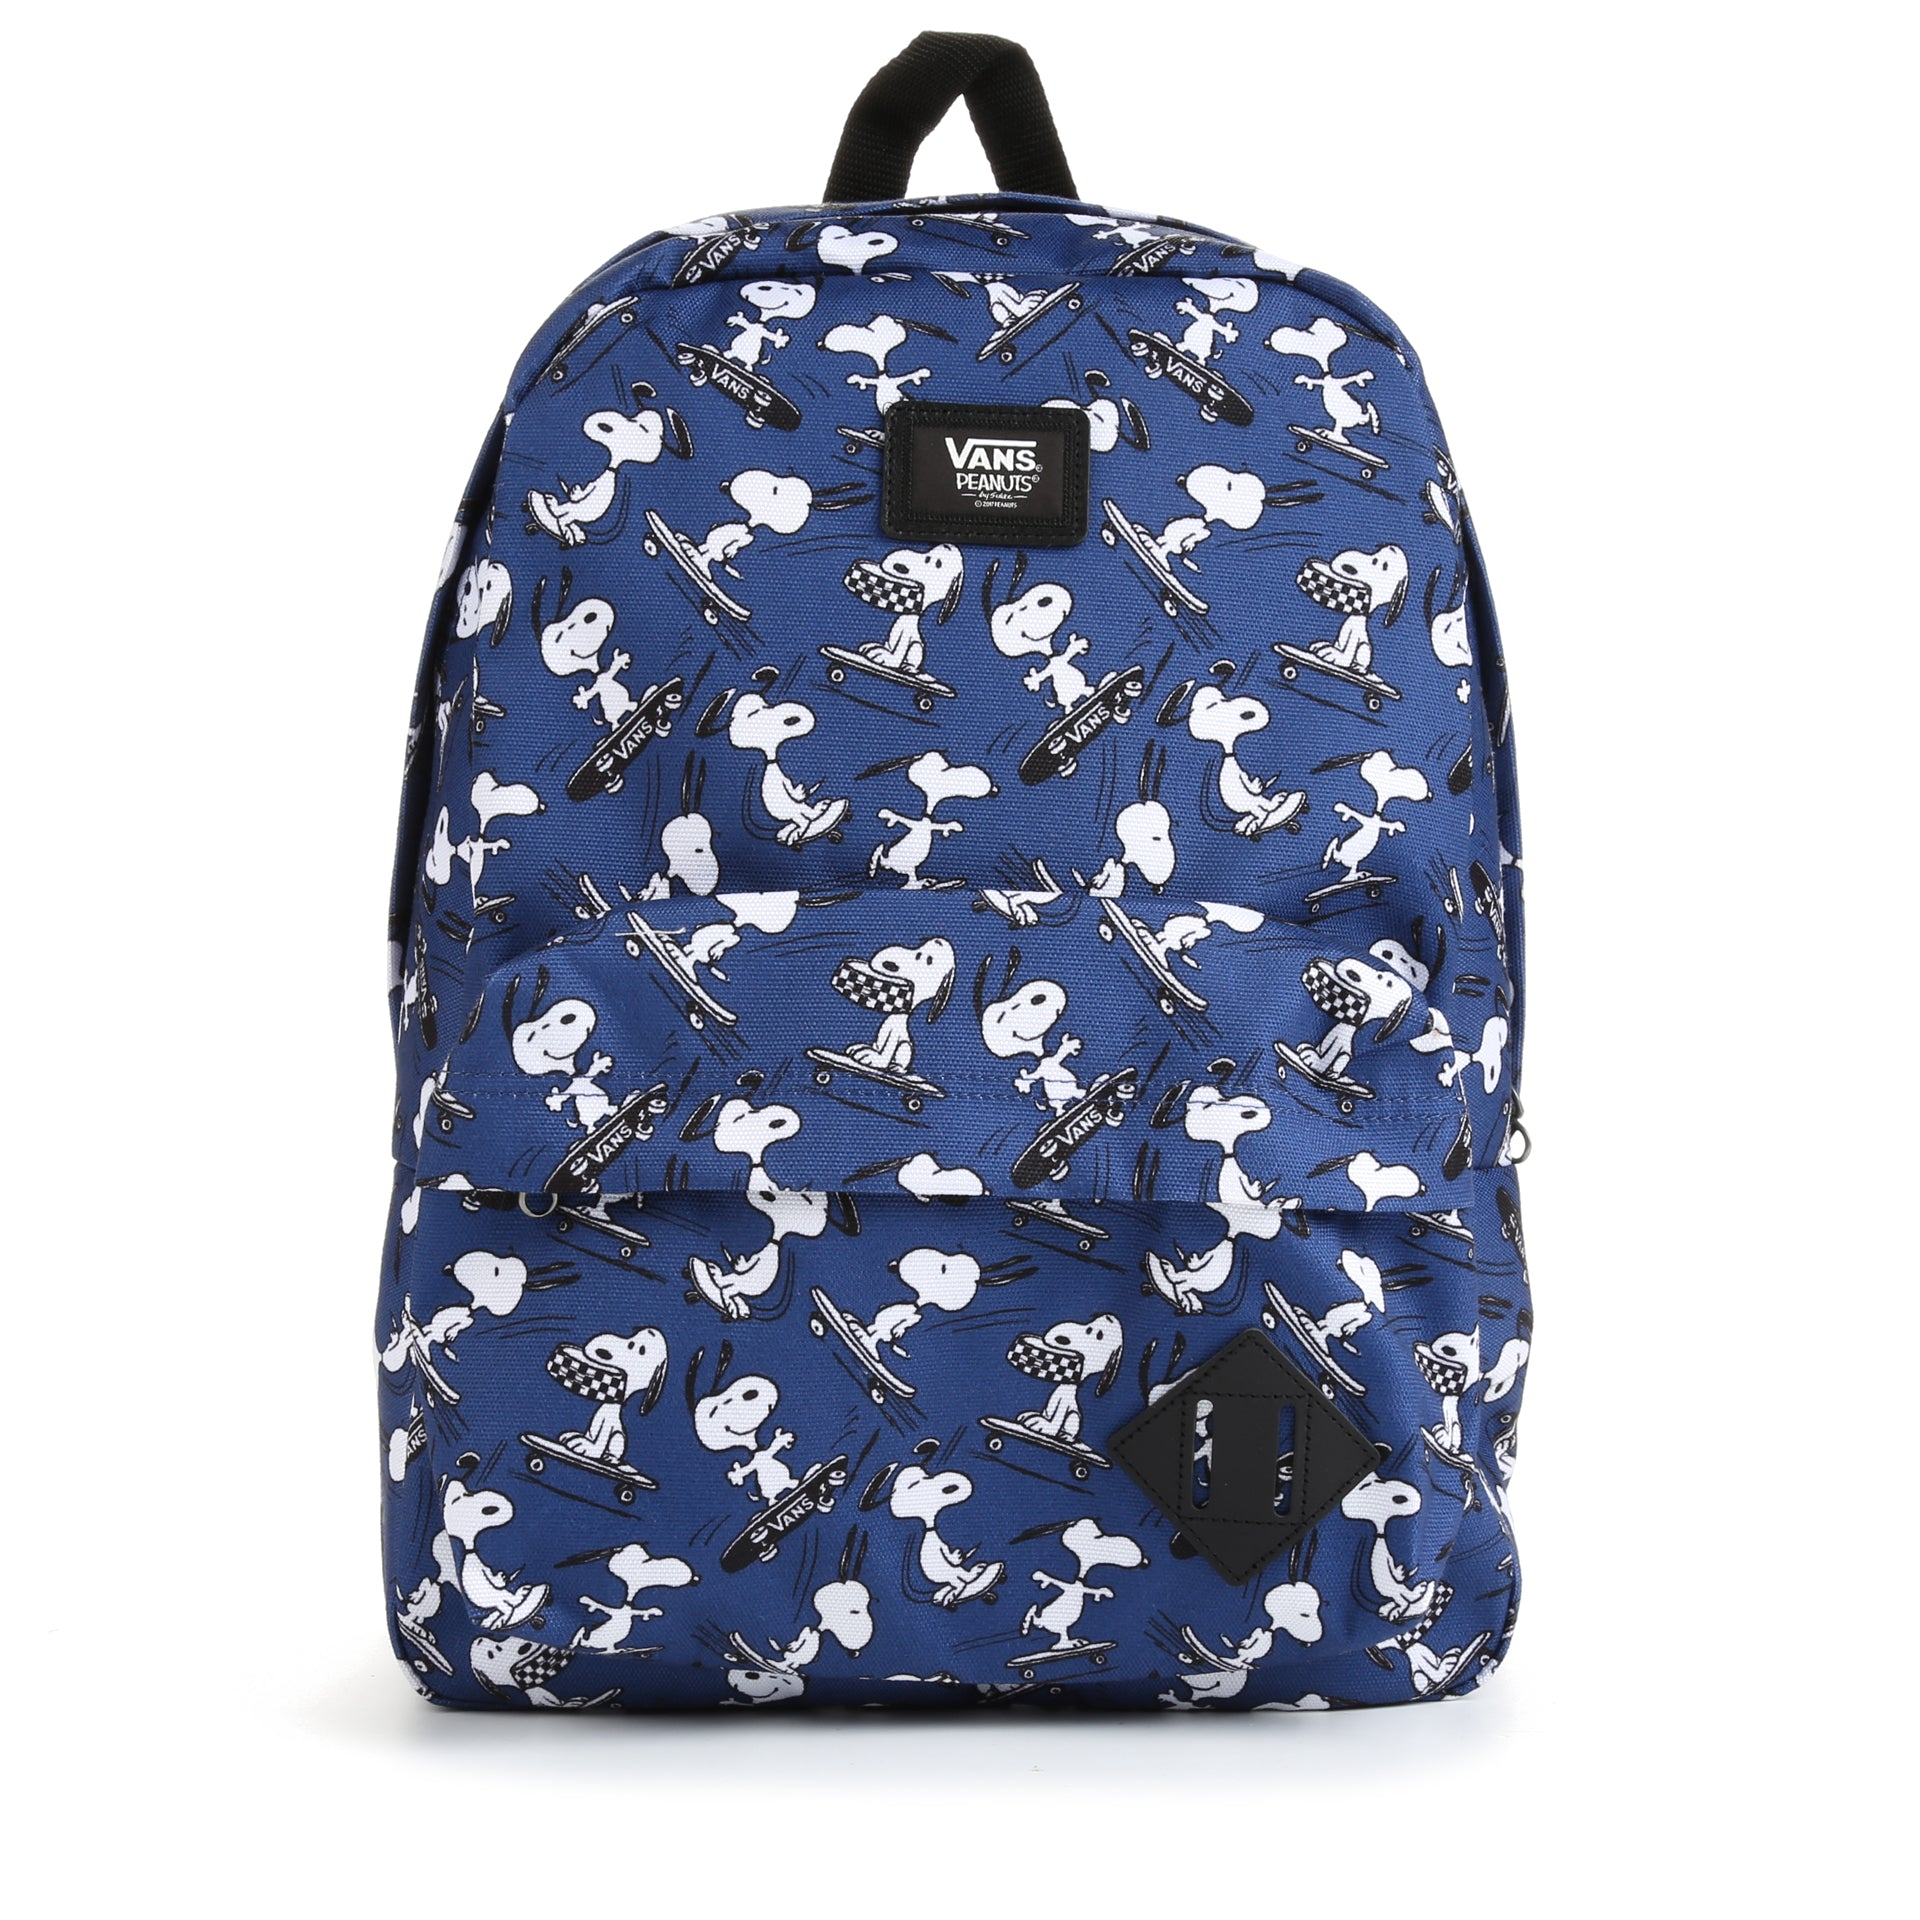 d49eac0b12 Vans x Peanuts Old Skool Backpack - True Navy - New Star